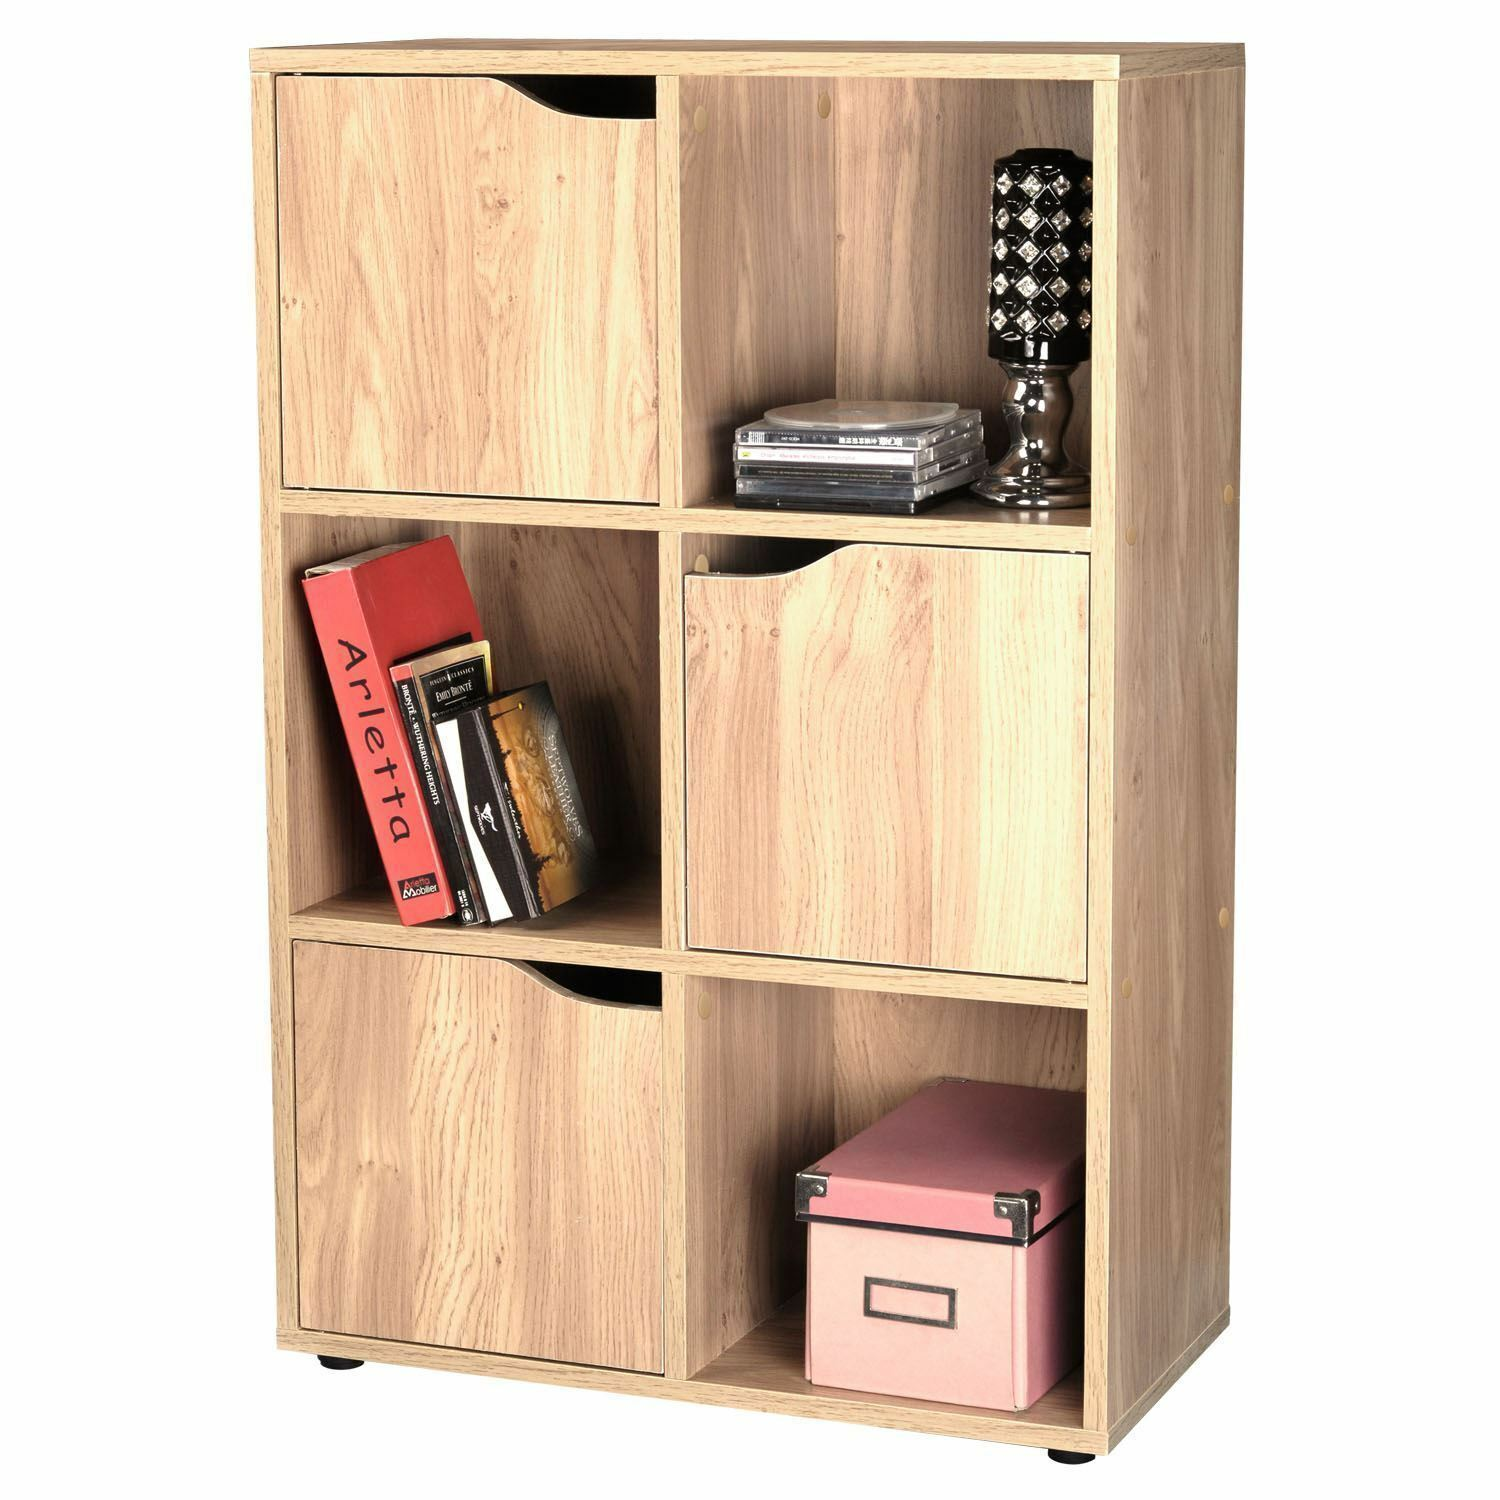 shelving unit with doors oak effect wooden storage unit display shelving bookcase 26051